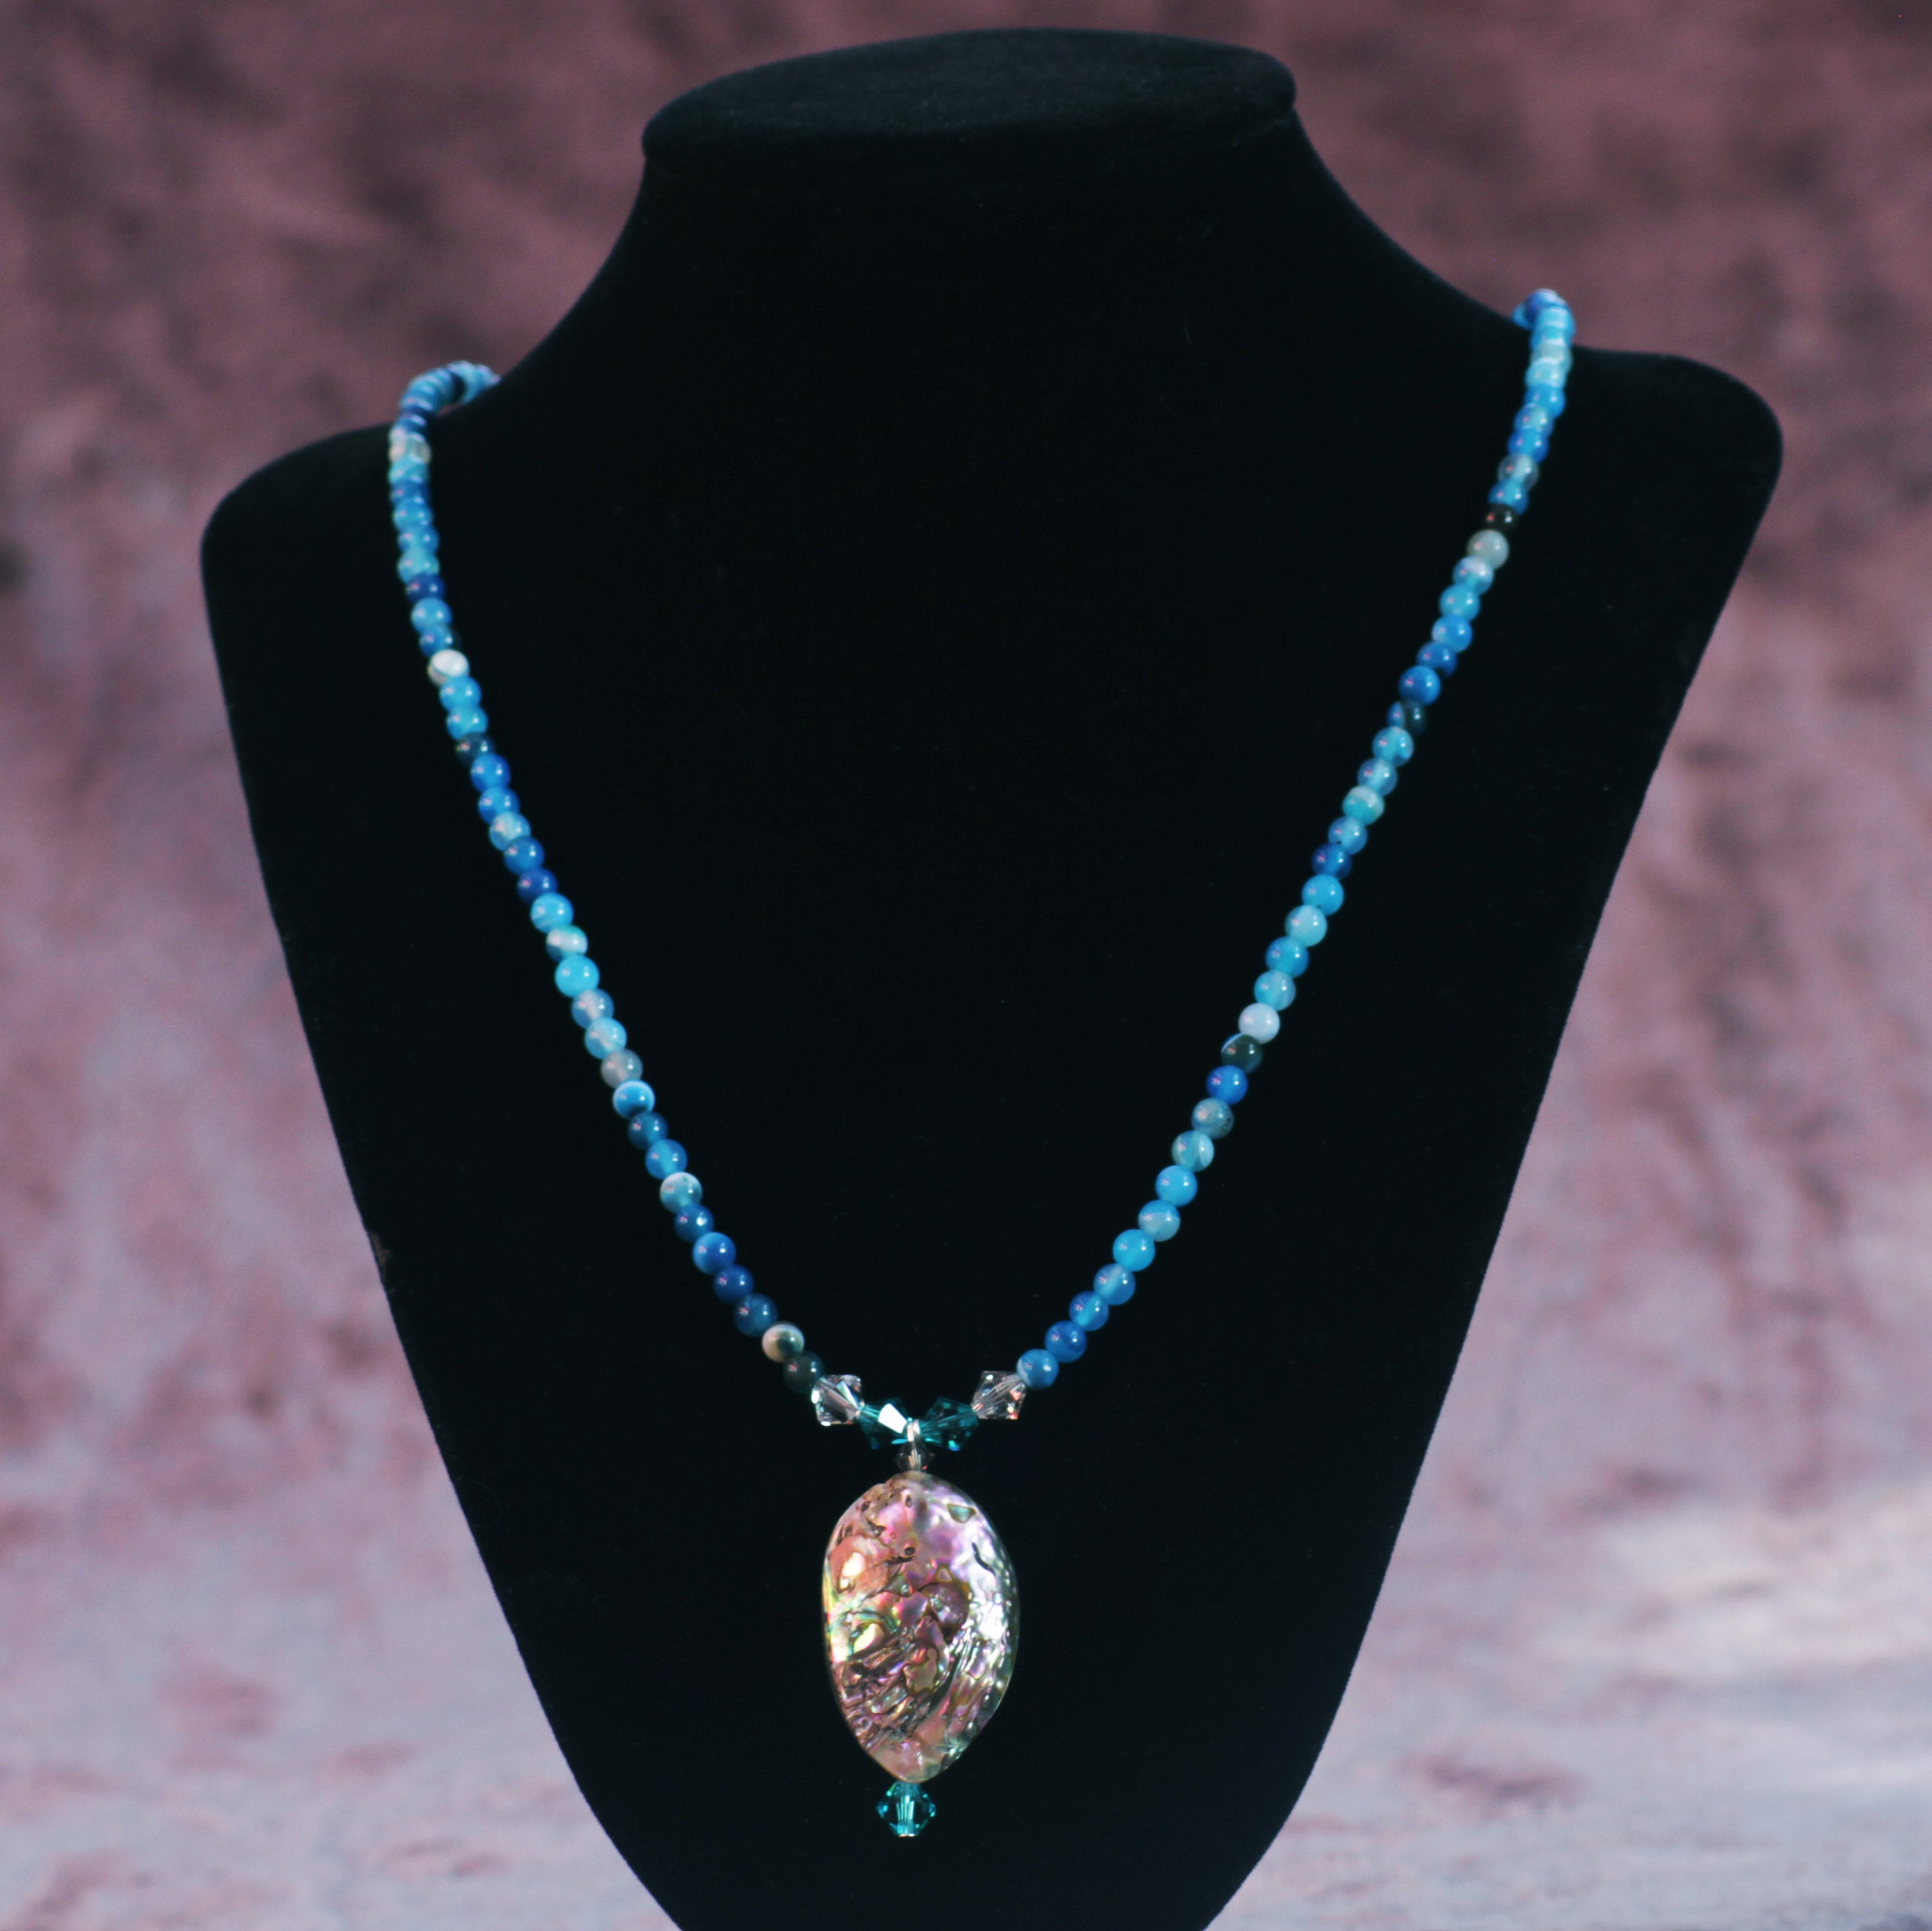 Women's Blue Agate & Abalone Necklace